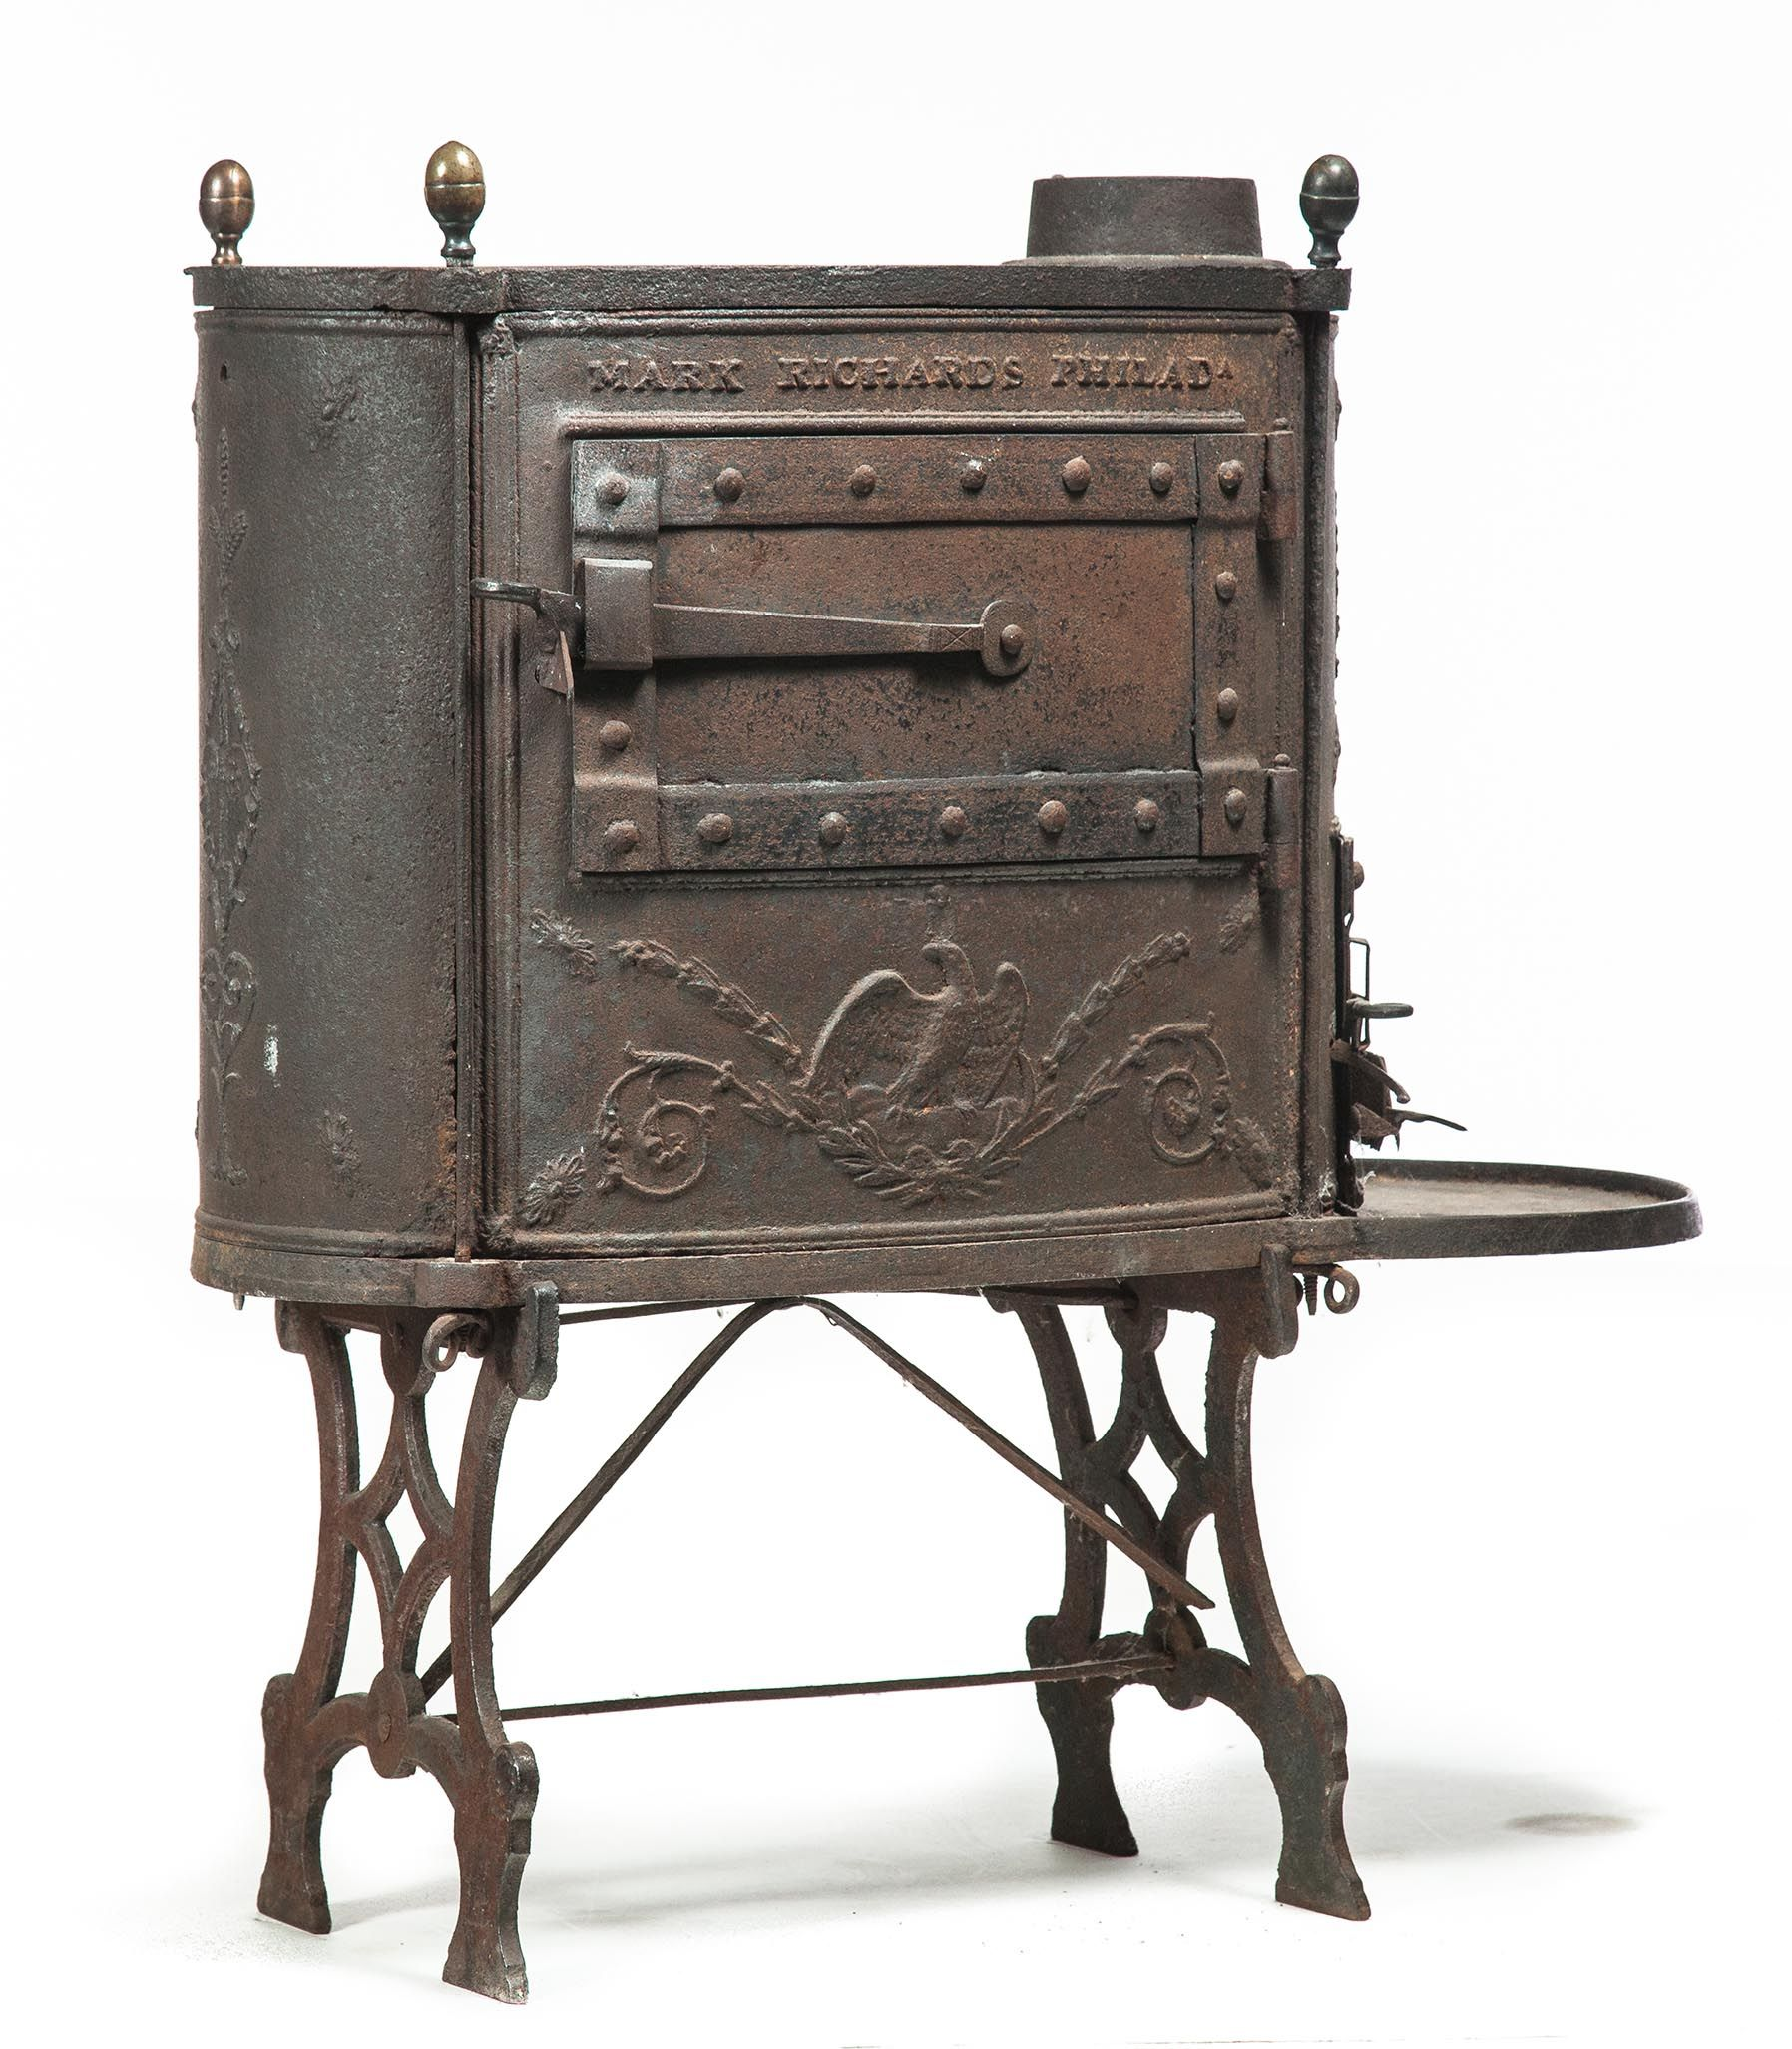 American Cast Iron Stove Early 19th Century Oval With American